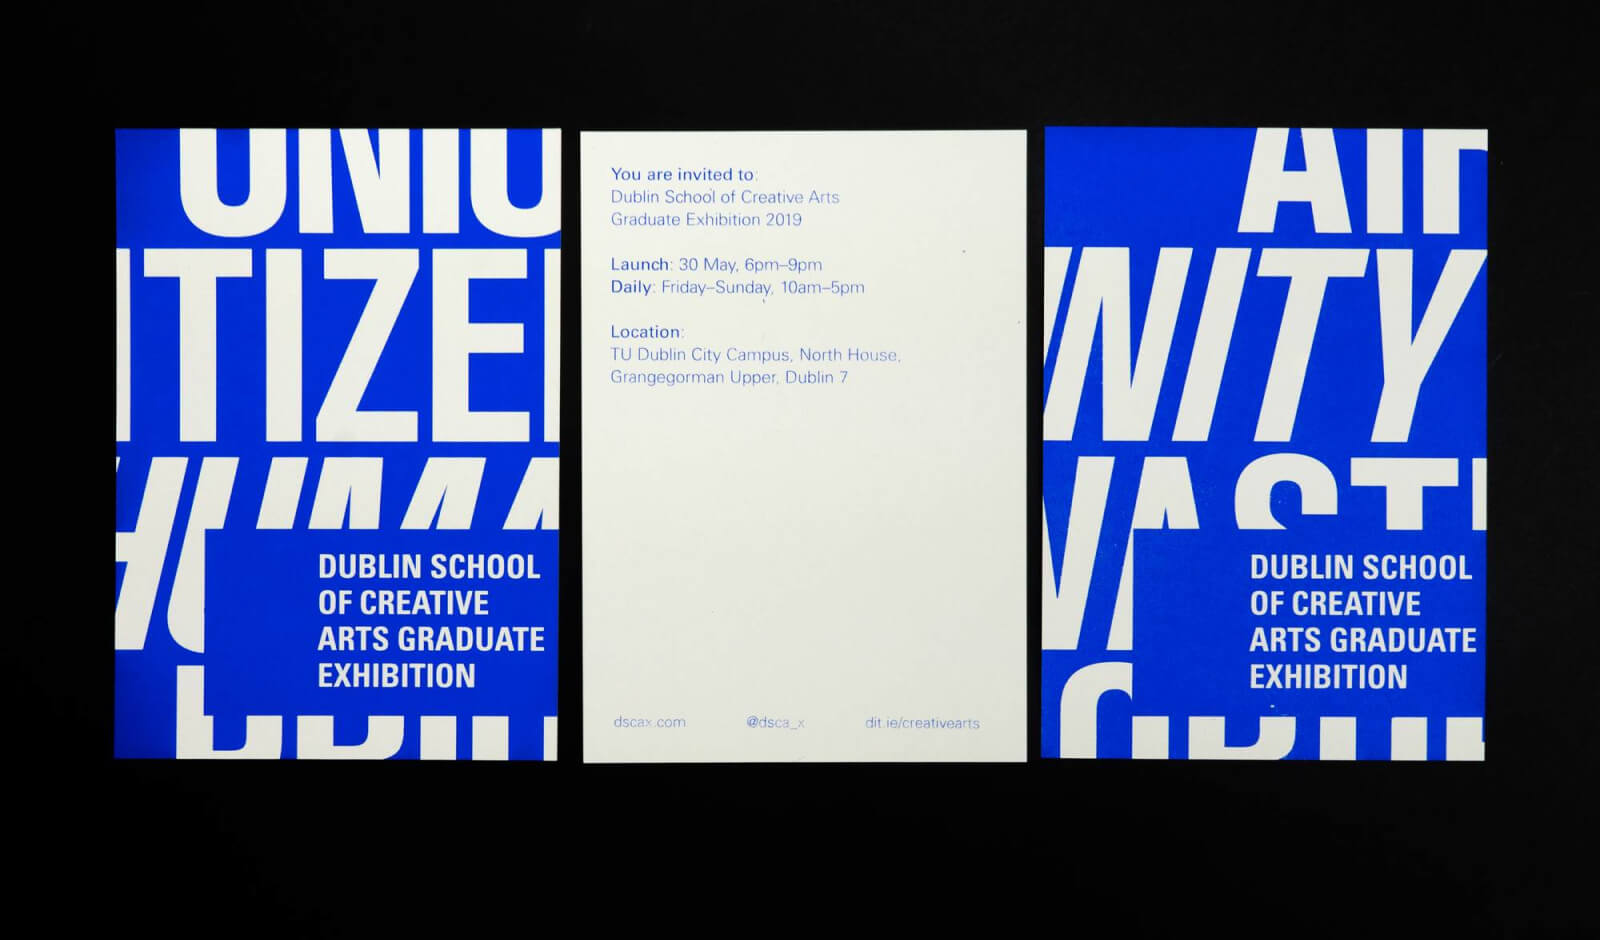 Dublin School of Creative Arts Graduate Exhibition Identity